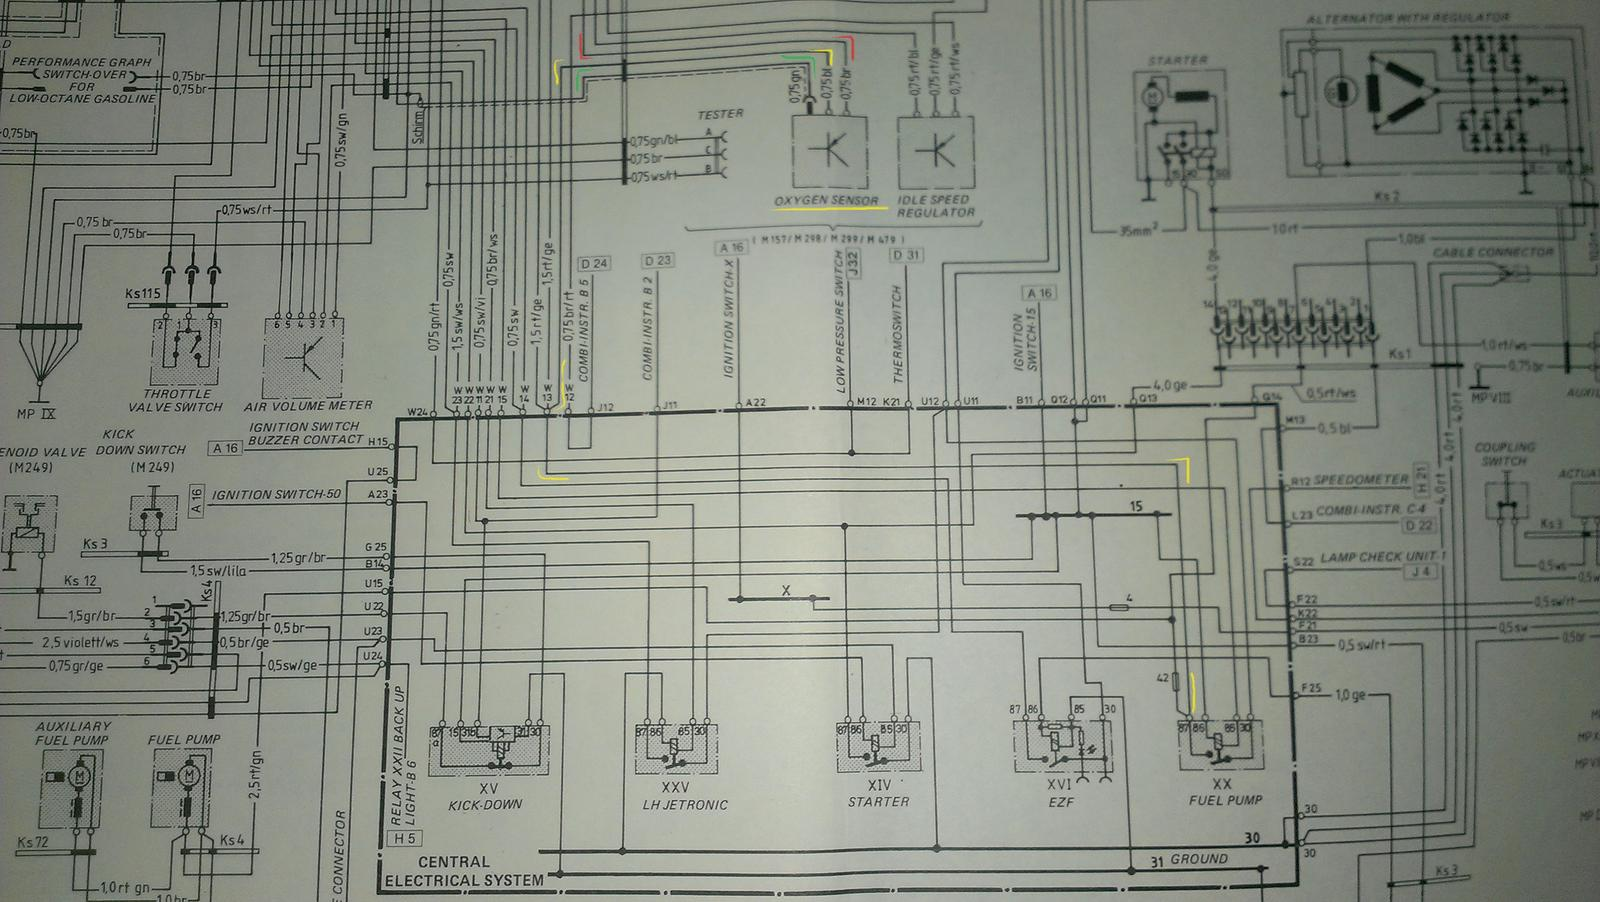 porsche 928 wiring diagram 2005 f150 ac clutch brittle o2 male connector w green wire under ce panel